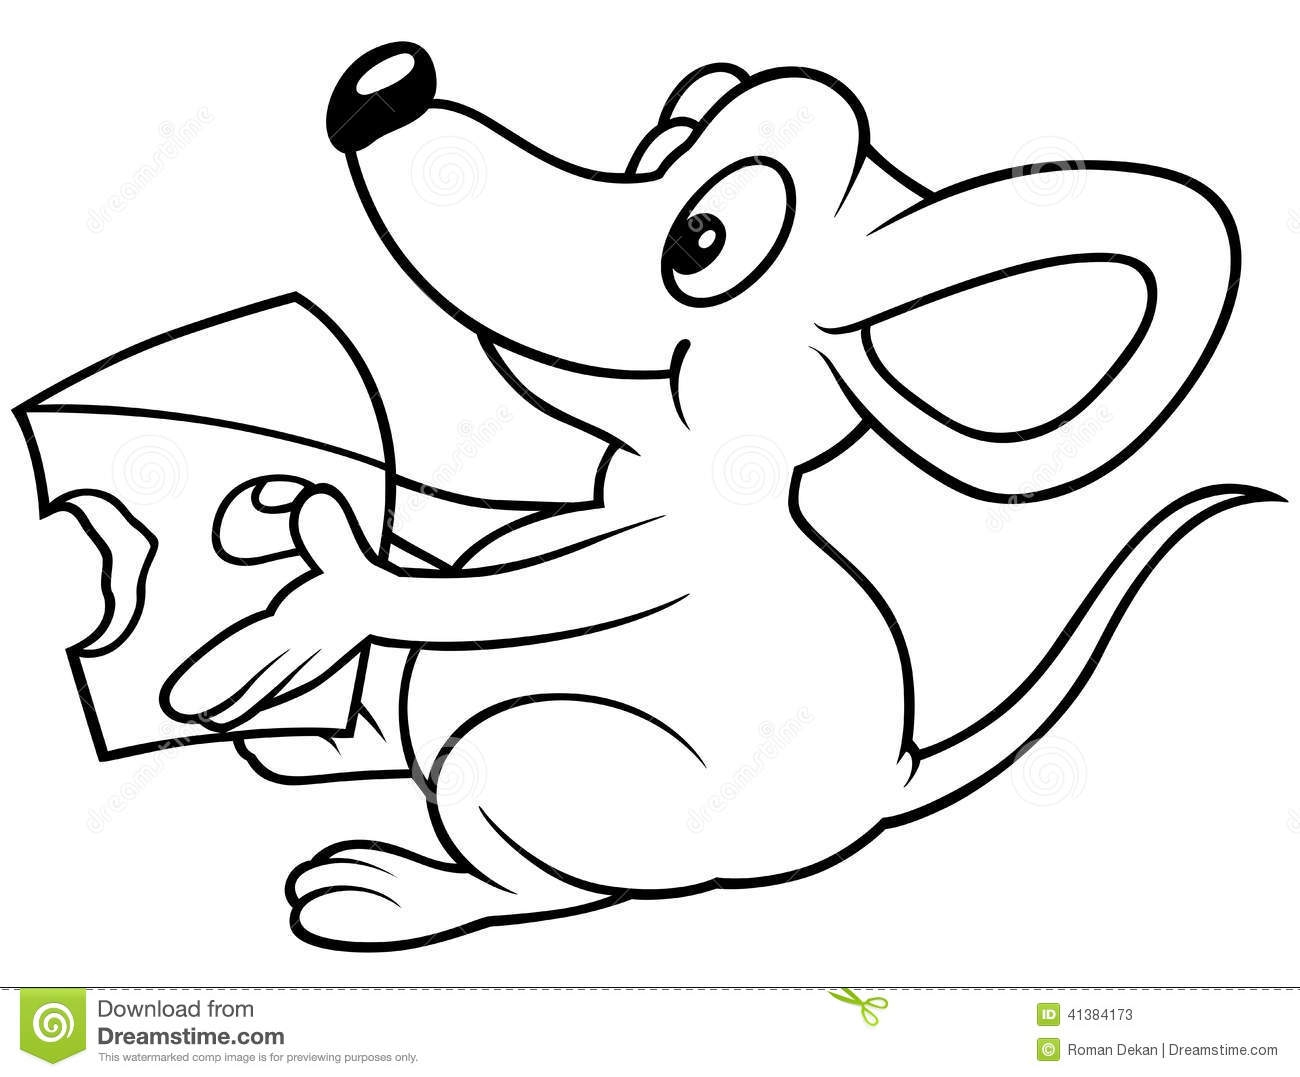 Mouse clipart black and white 5 » Clipart Station.